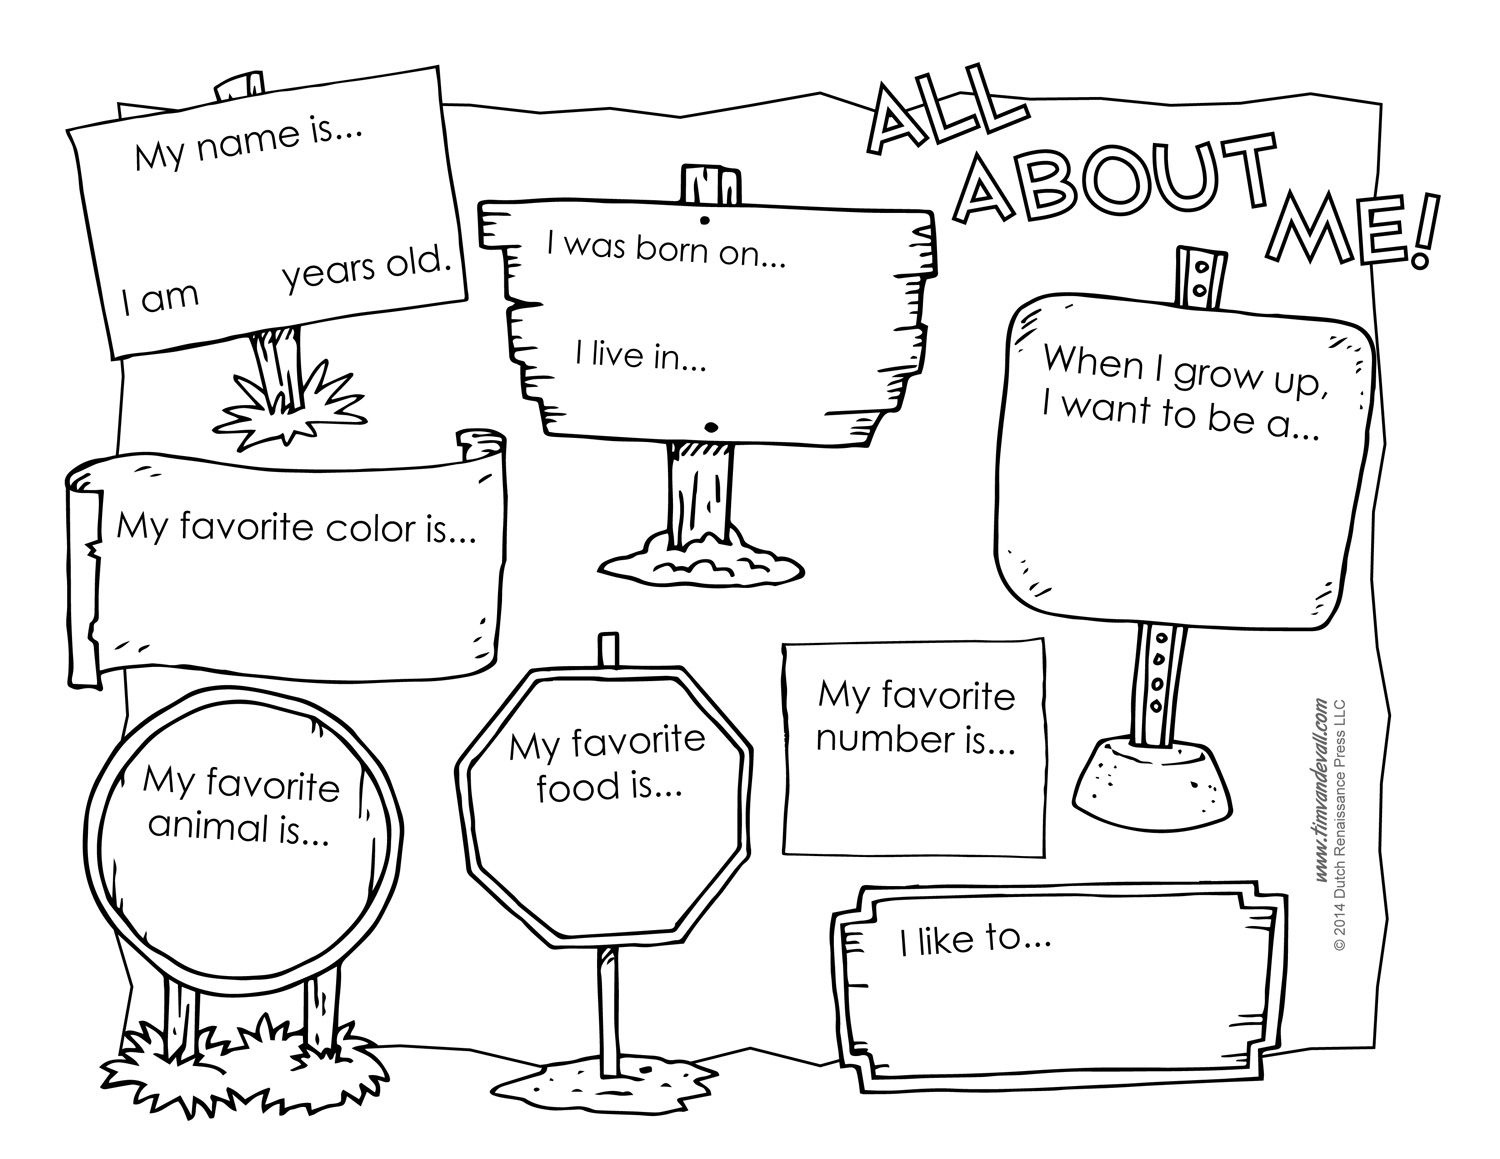 Pinaaron Addis On Classroom | All About Me Worksheet, All About - All About Me Free Printable